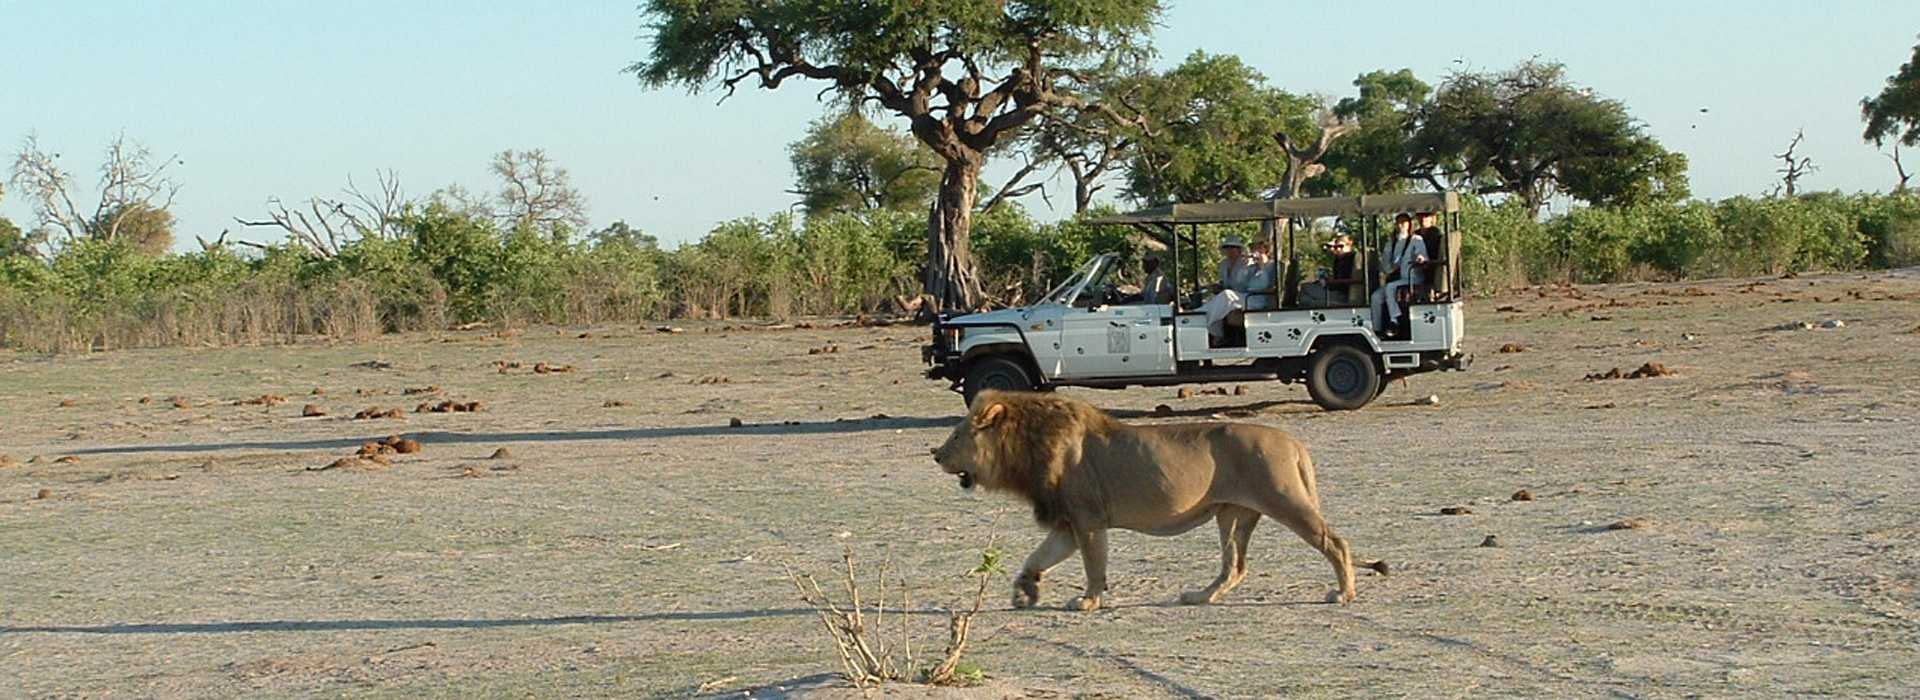 Lion Alongside Safari Vehicle In Chobe, Botswana